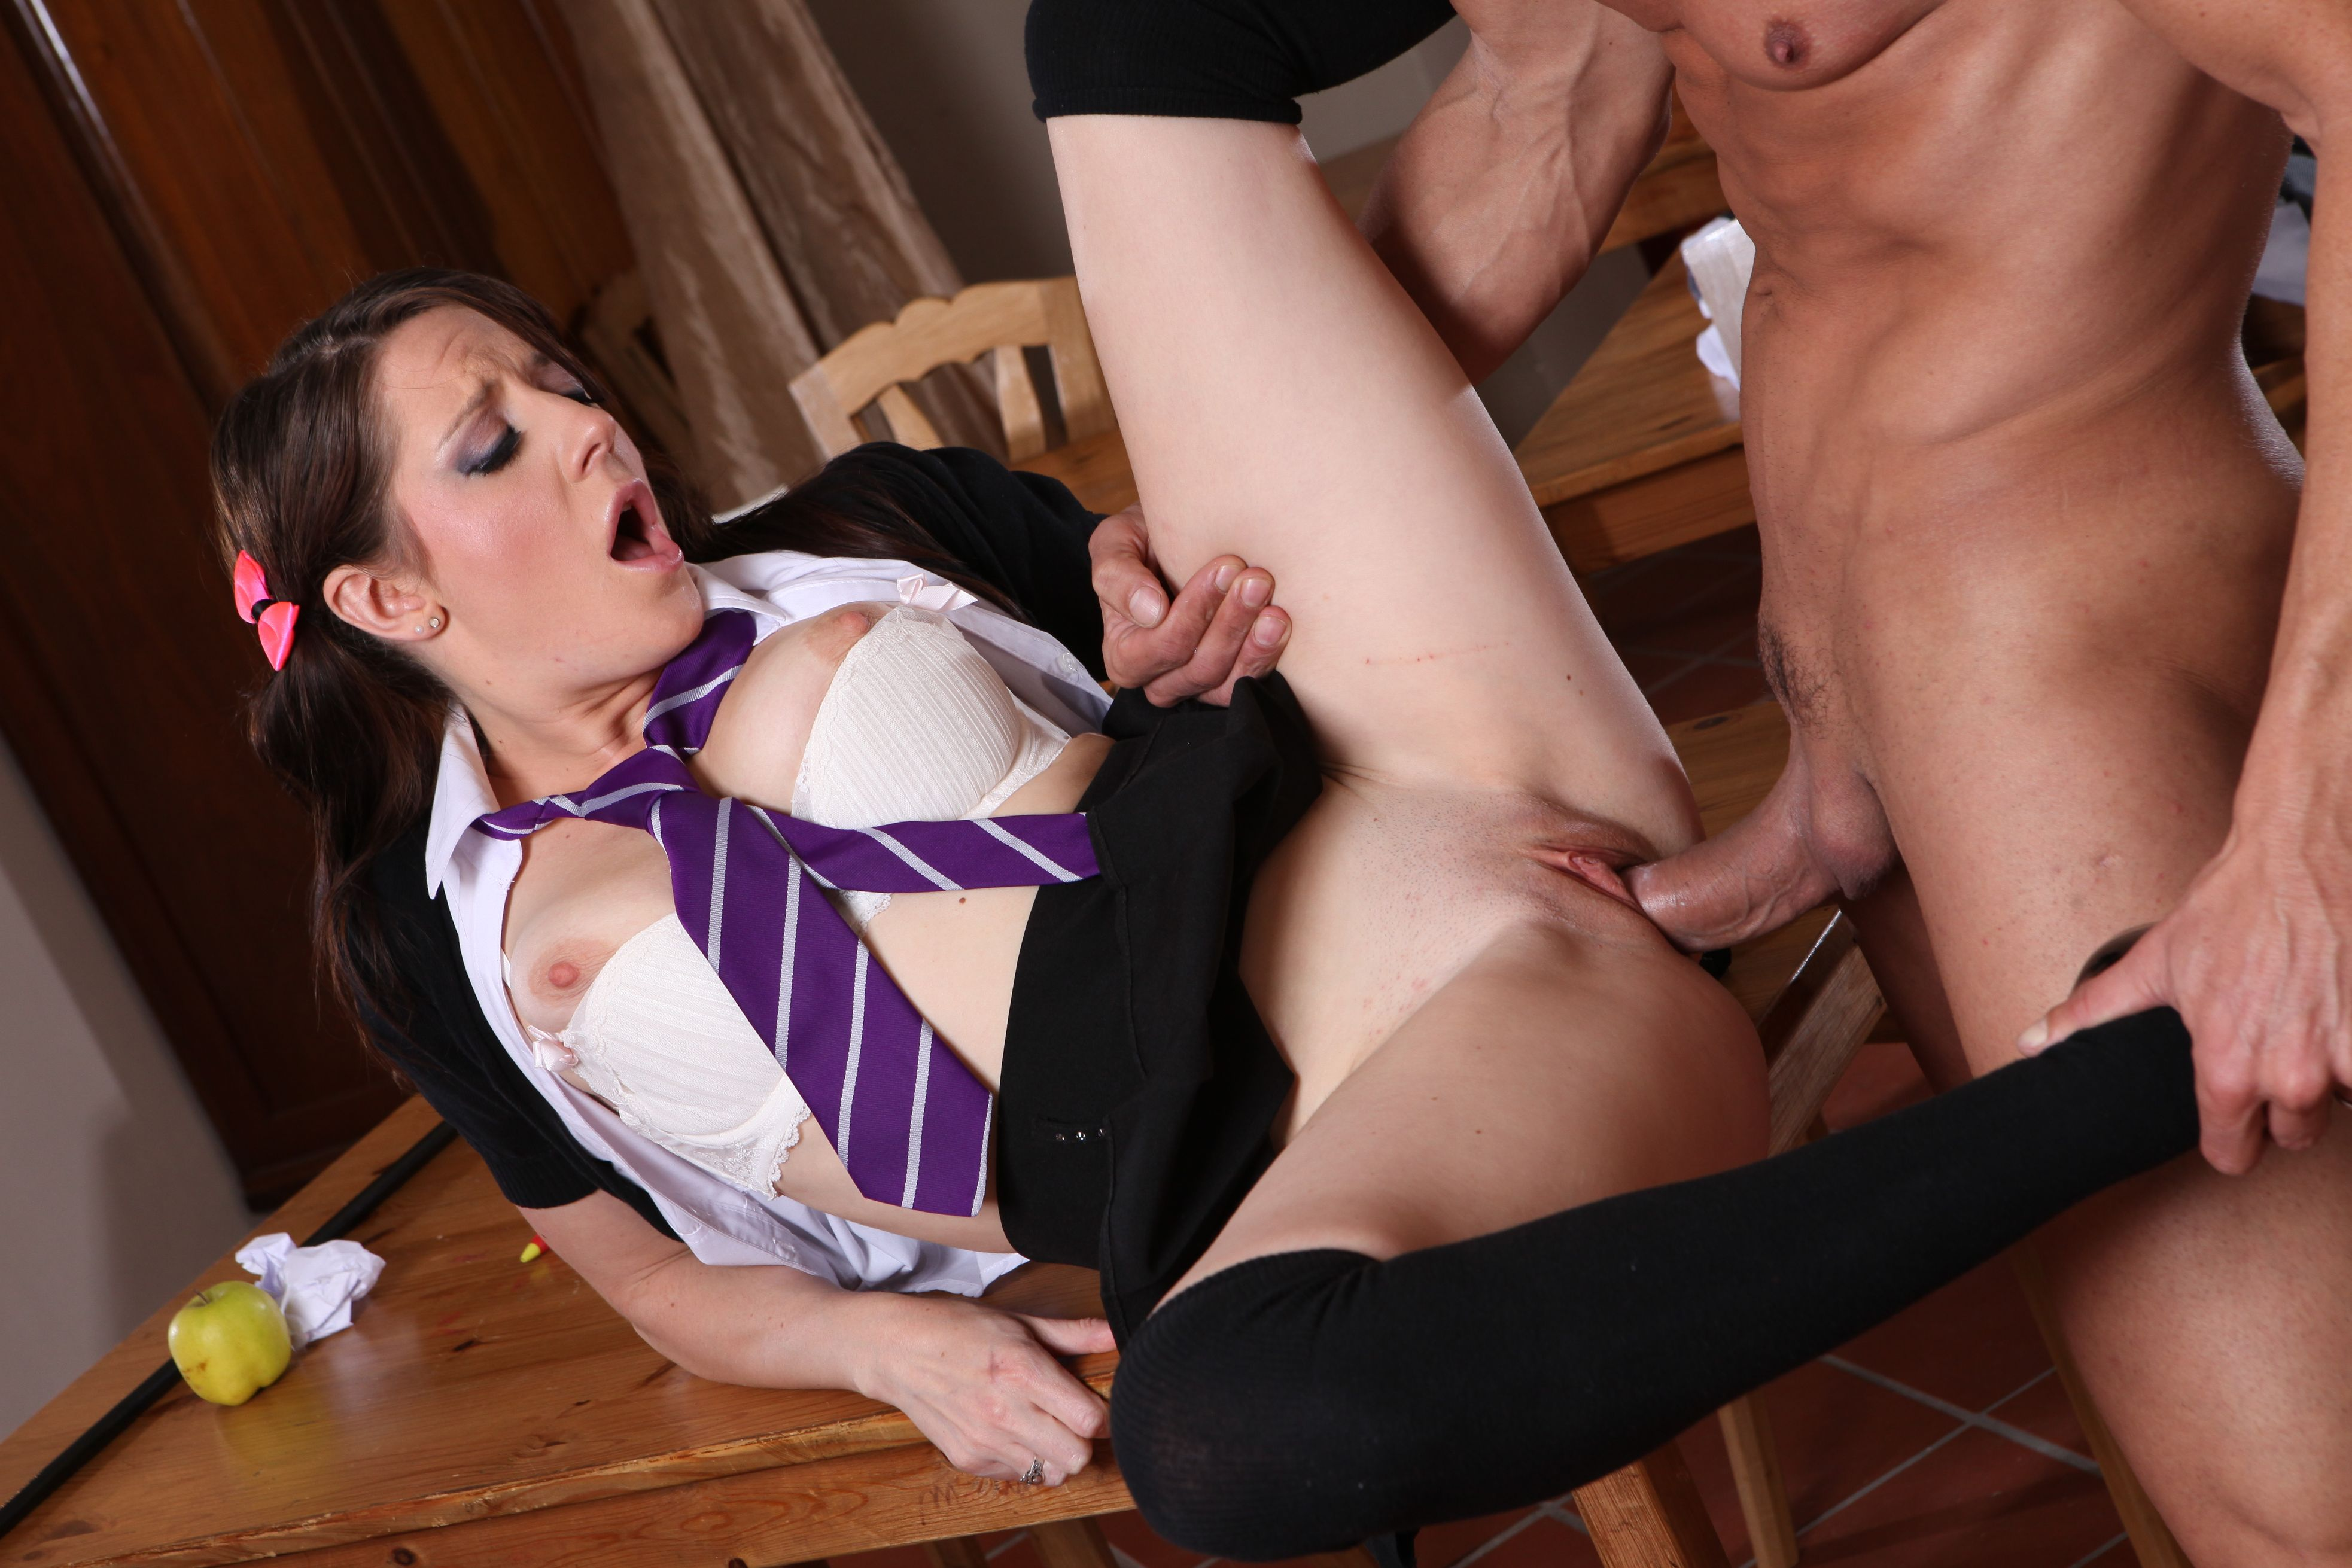 Fucked On Teachers Desk In His Office With Little Candy Needing Extra Cock Help